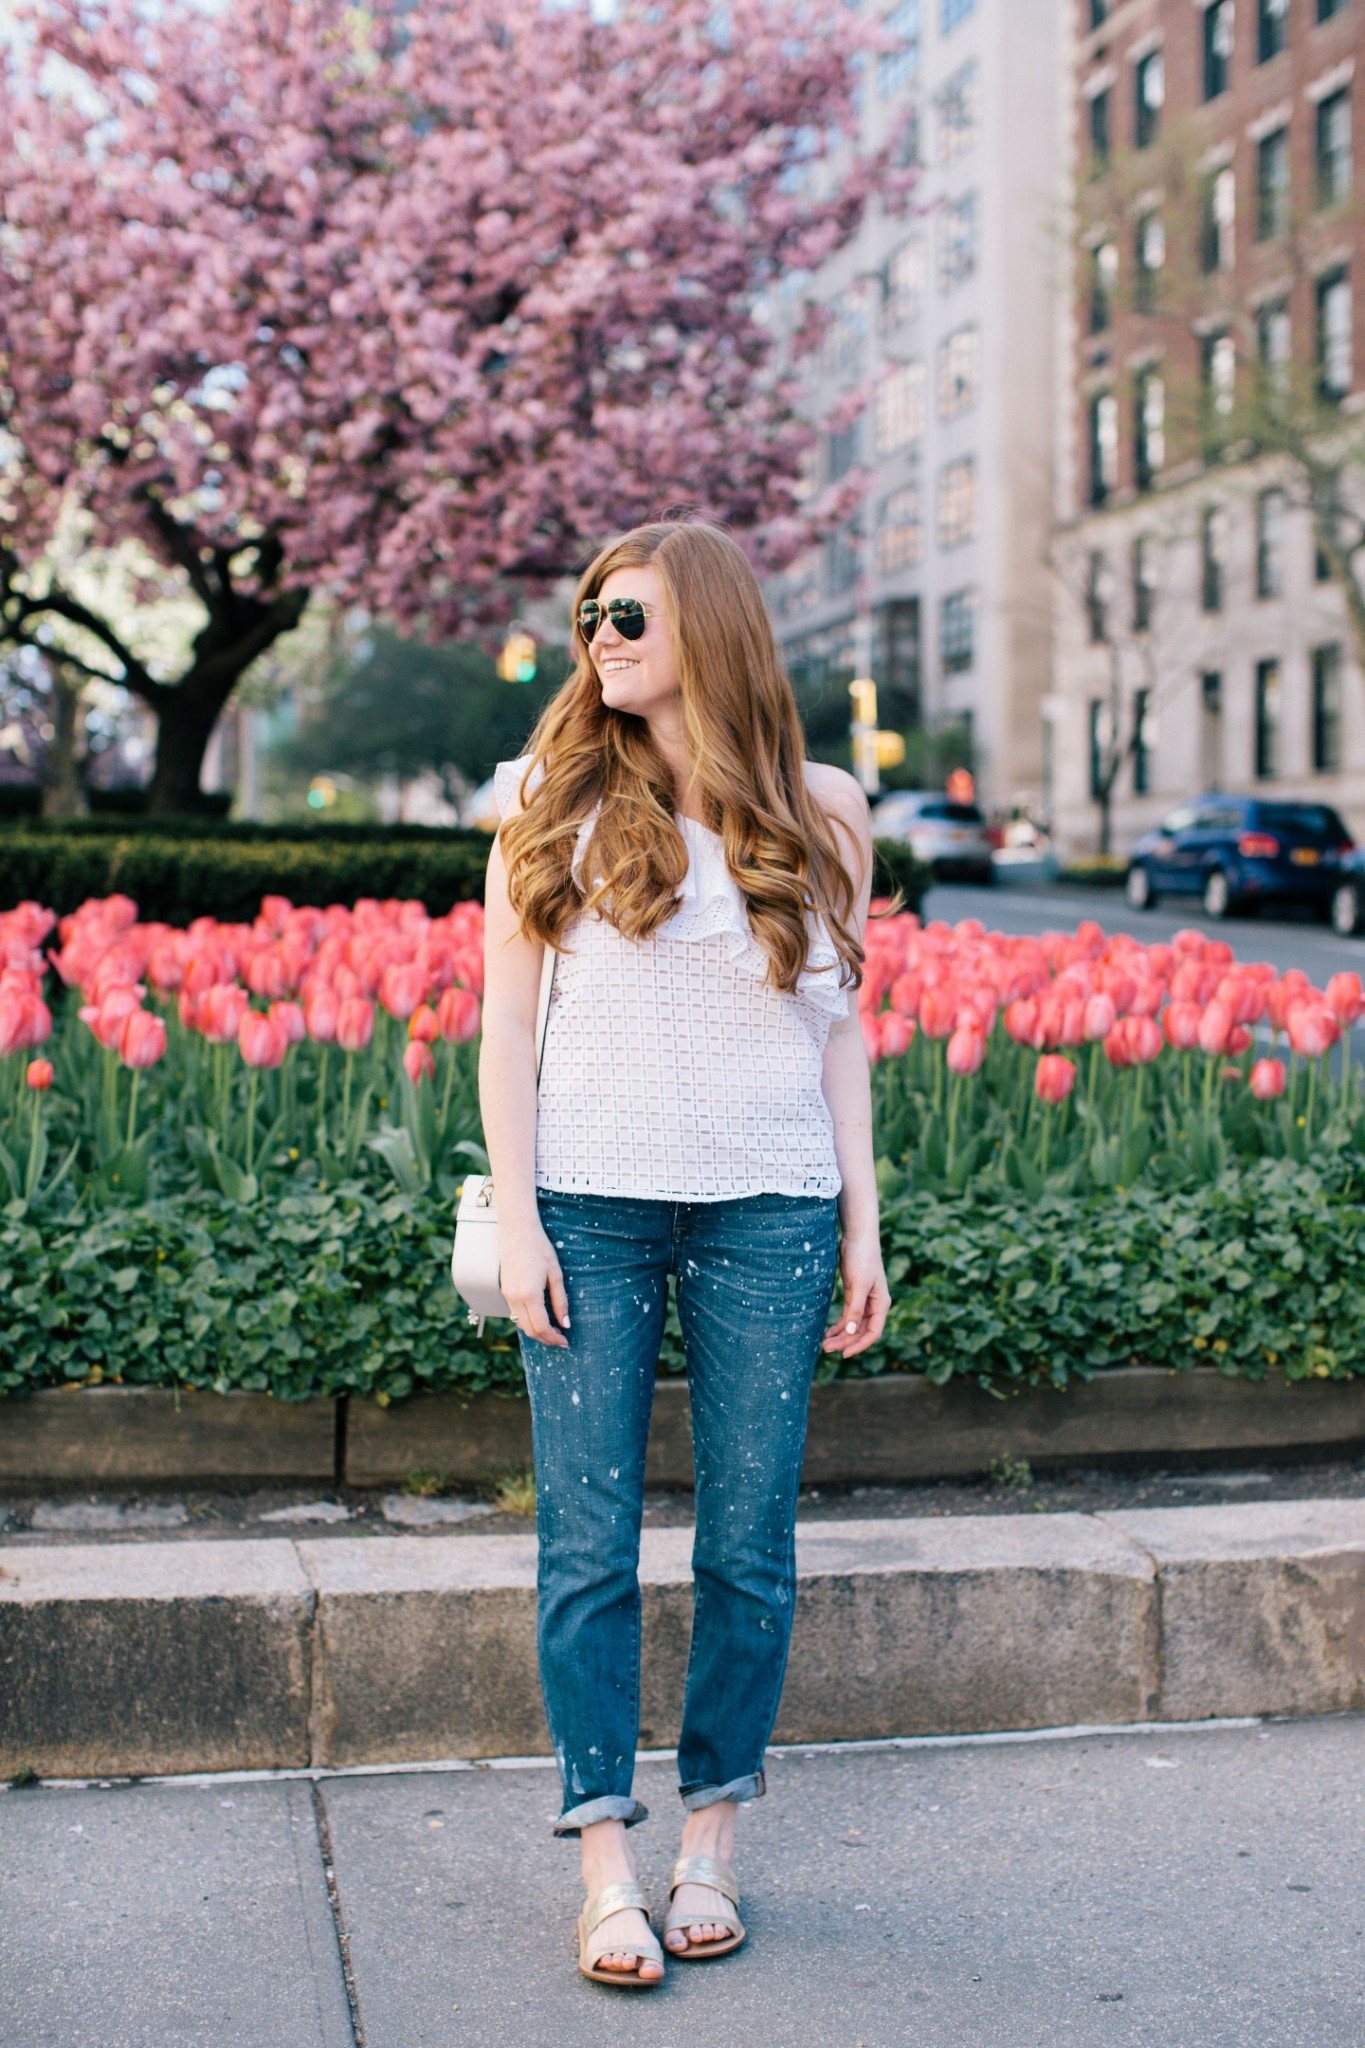 Lifestyle blogger Mollie Sheperdson in front of the Park Avenue Tulips